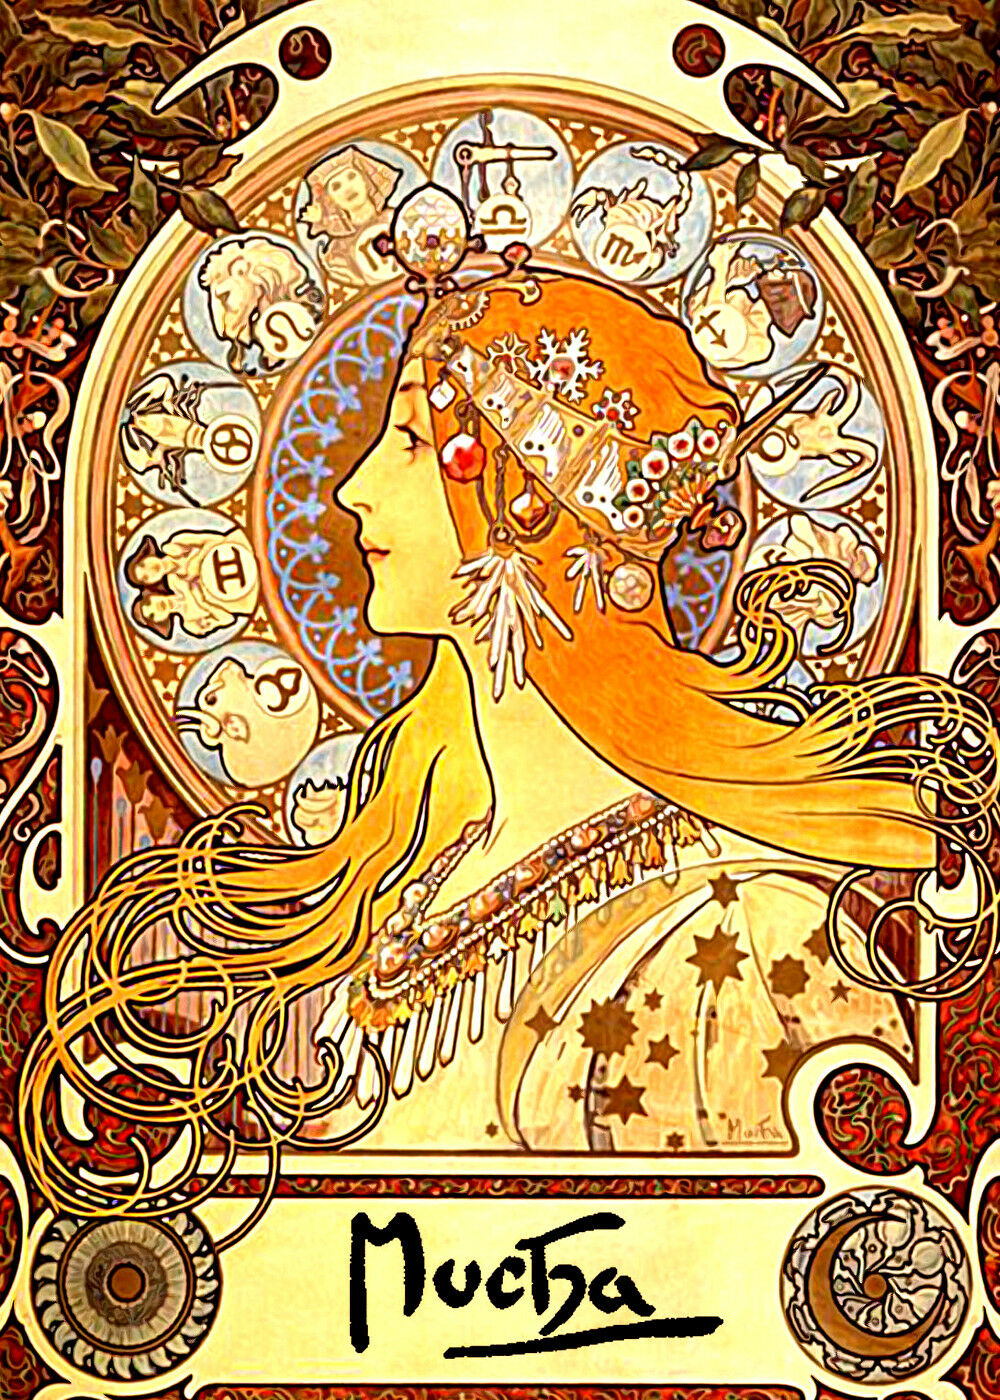 New Hand Cut Wooden Jigsaw Puzzle ZODIAC by Alphonse Mucha 400-500 pcs